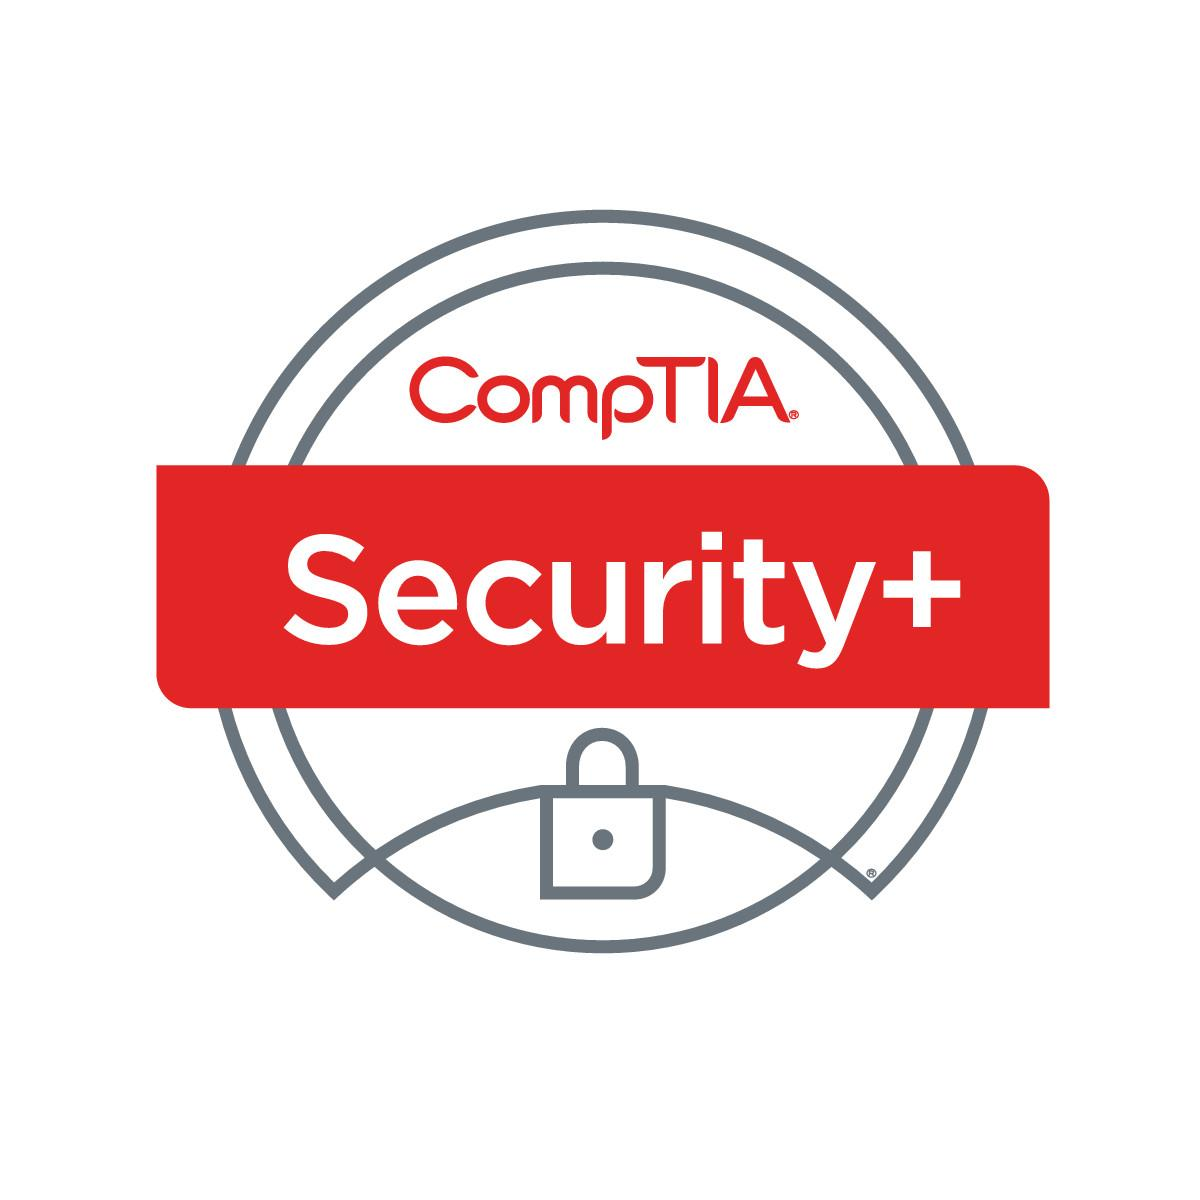 Comptia security certification training sec includes exam comptia security certification training sec includes exam voucher 1betcityfo Gallery